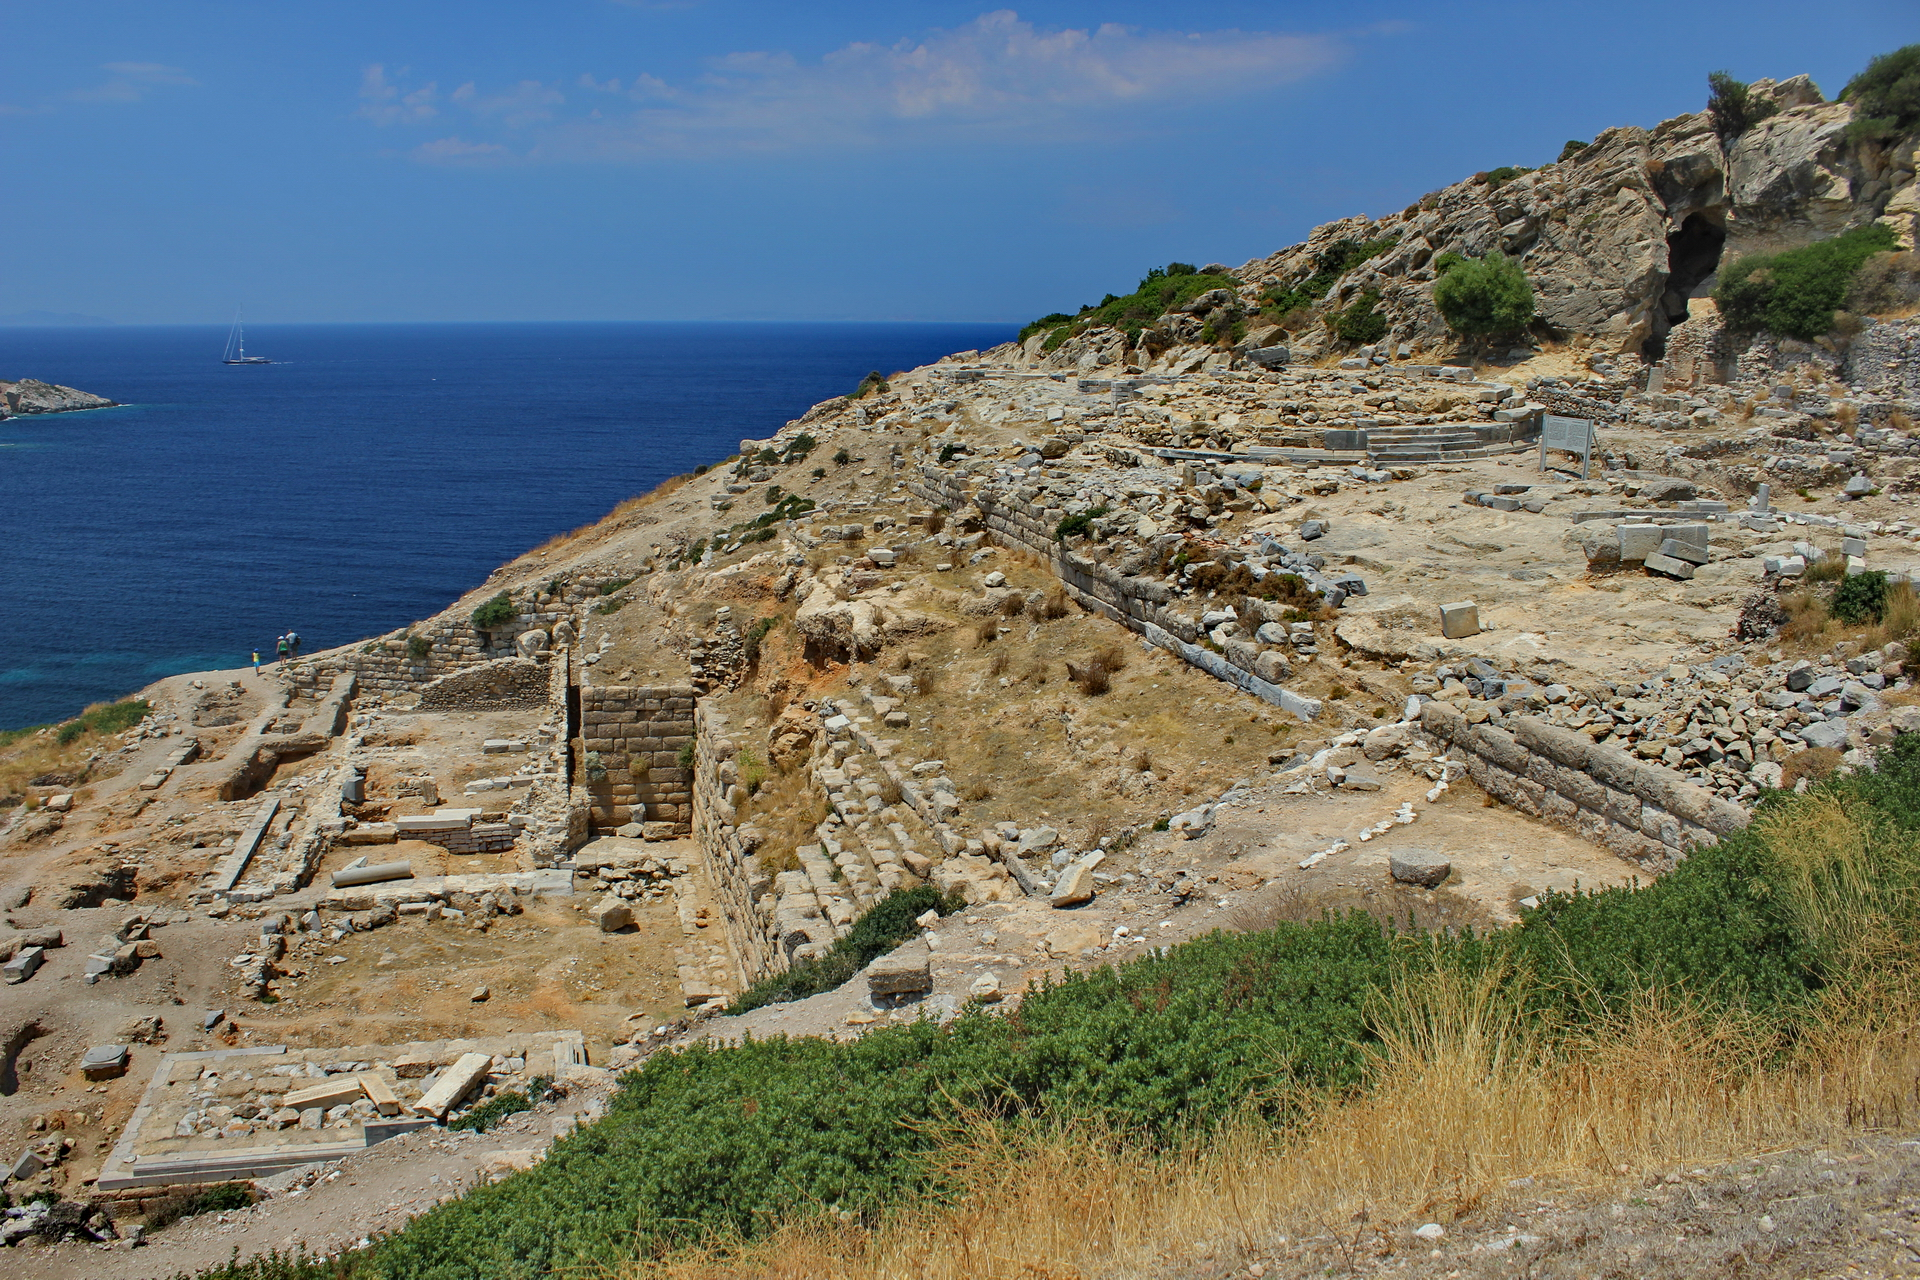 Cnidus-Knidos: Apollo and Round Temple